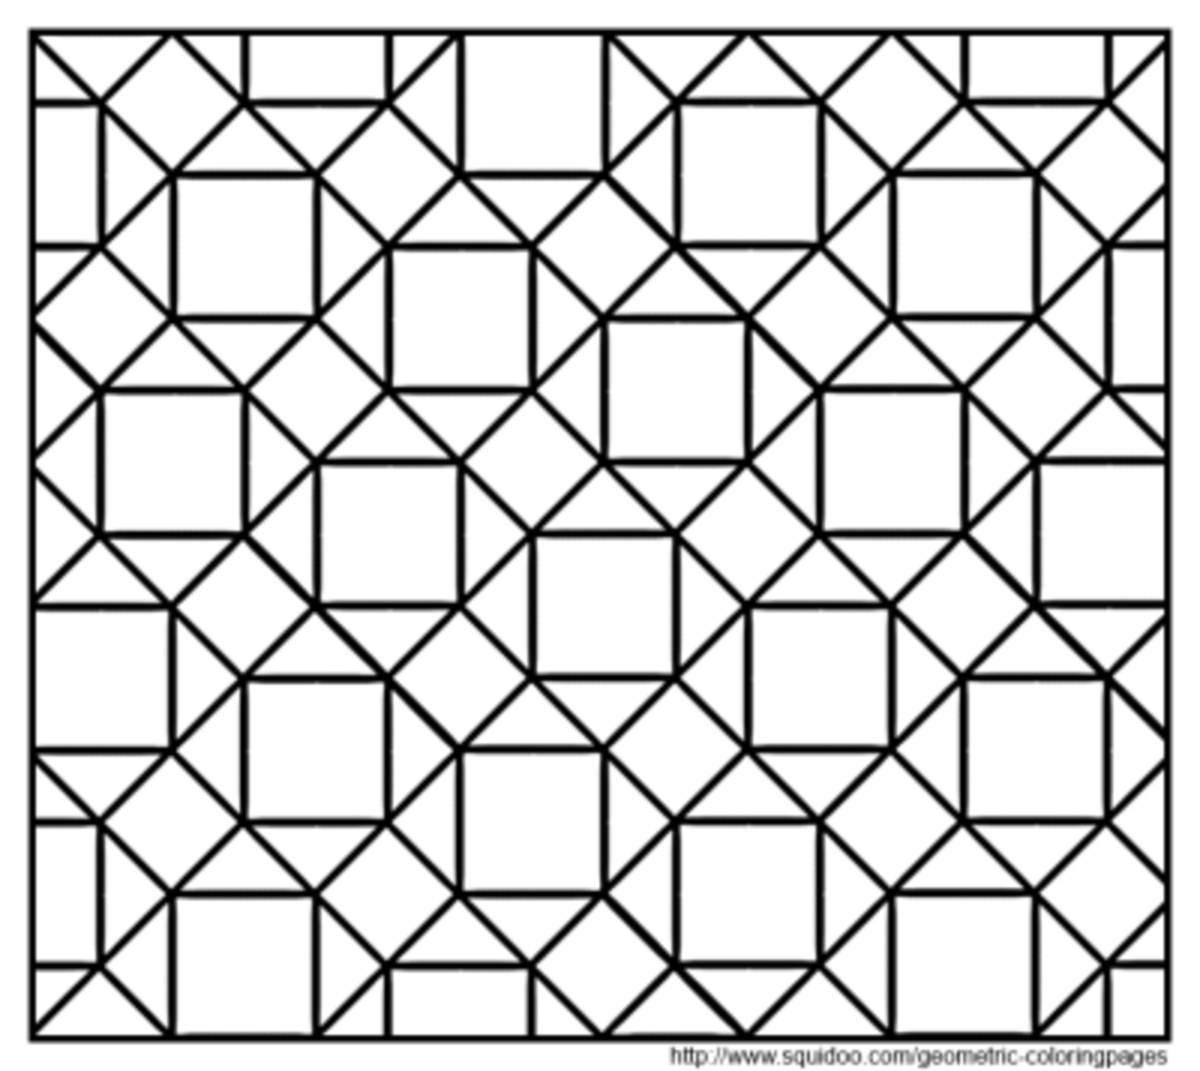 tessellations coloring pages - geometric coloring pages hubpages